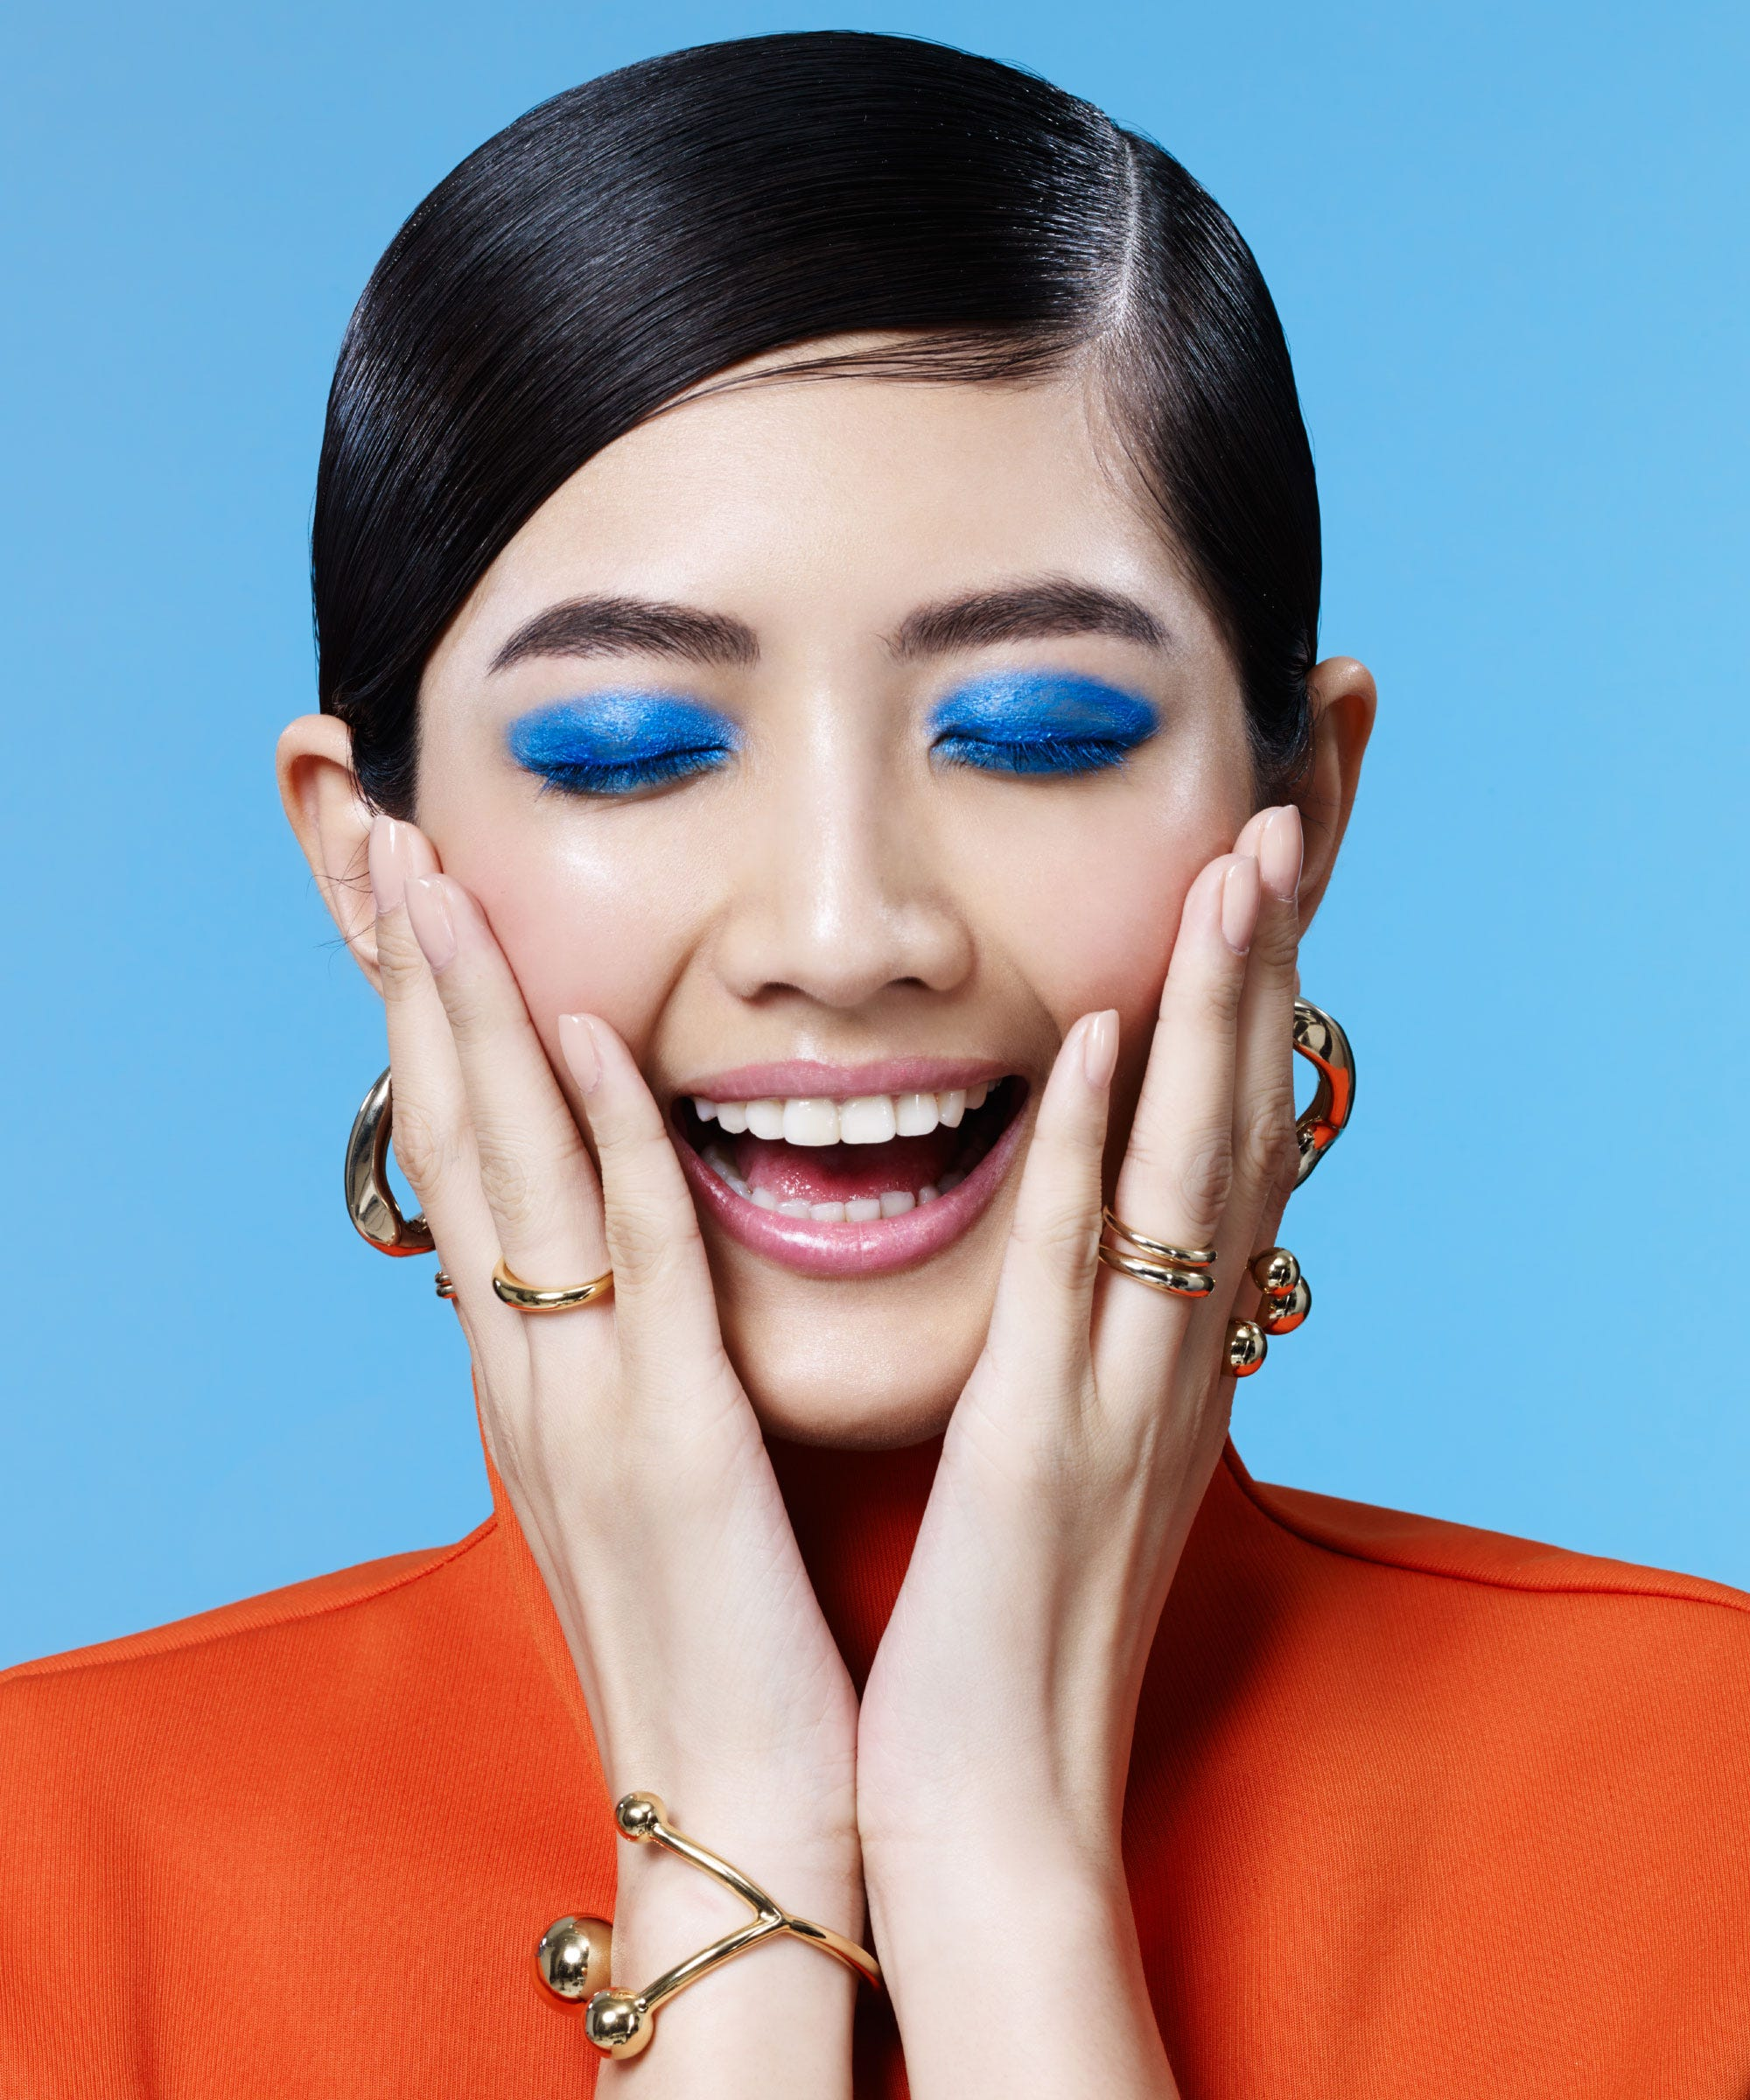 Buy Trend beauty the turquoise eye pictures trends